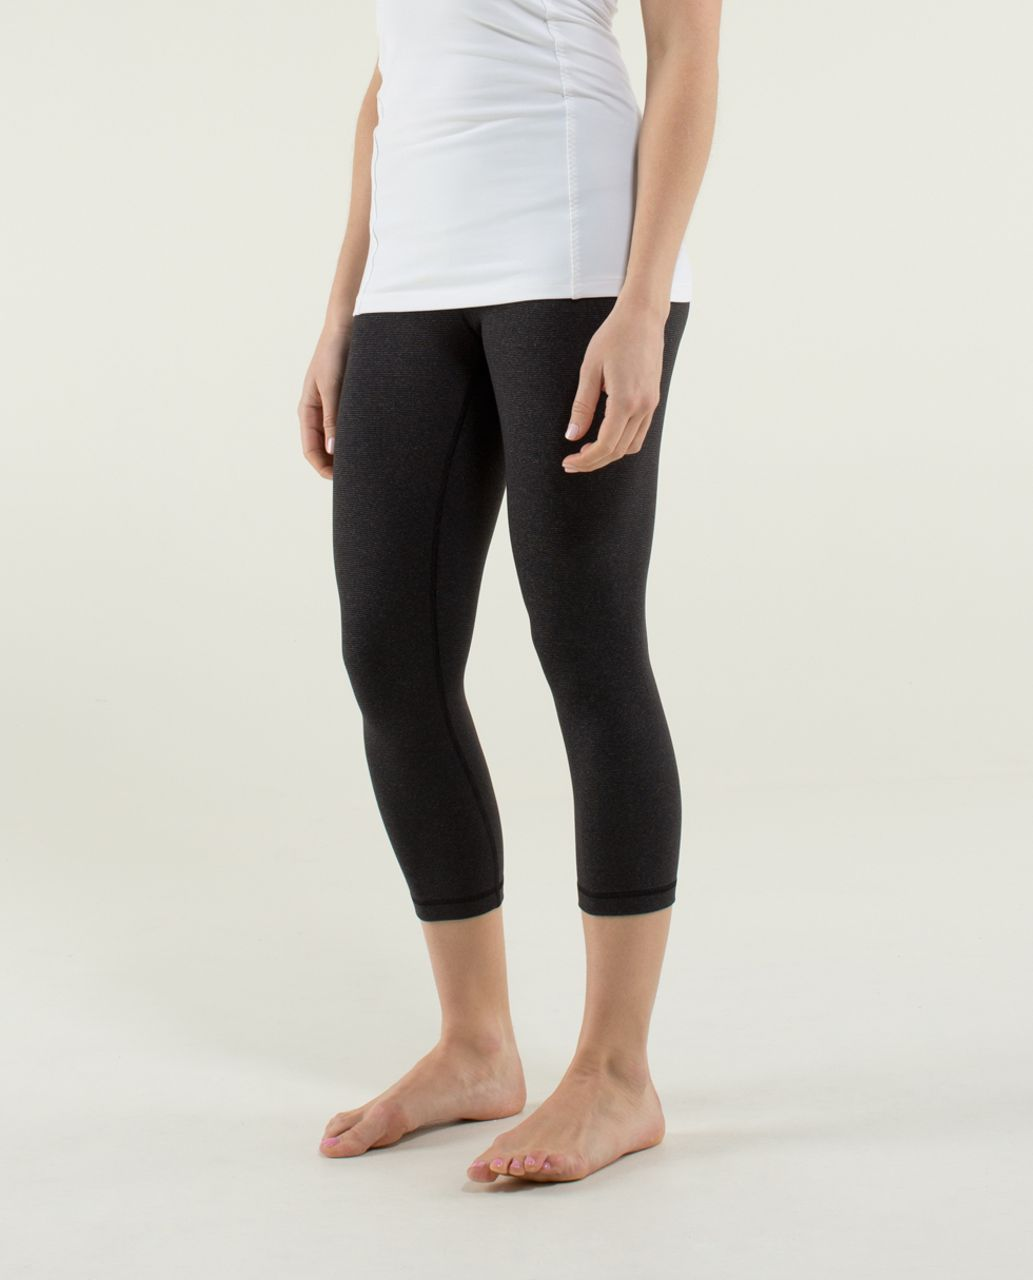 Lululemon Wunder Under Crop - Wee Stripe Black Heathered Black /  Black